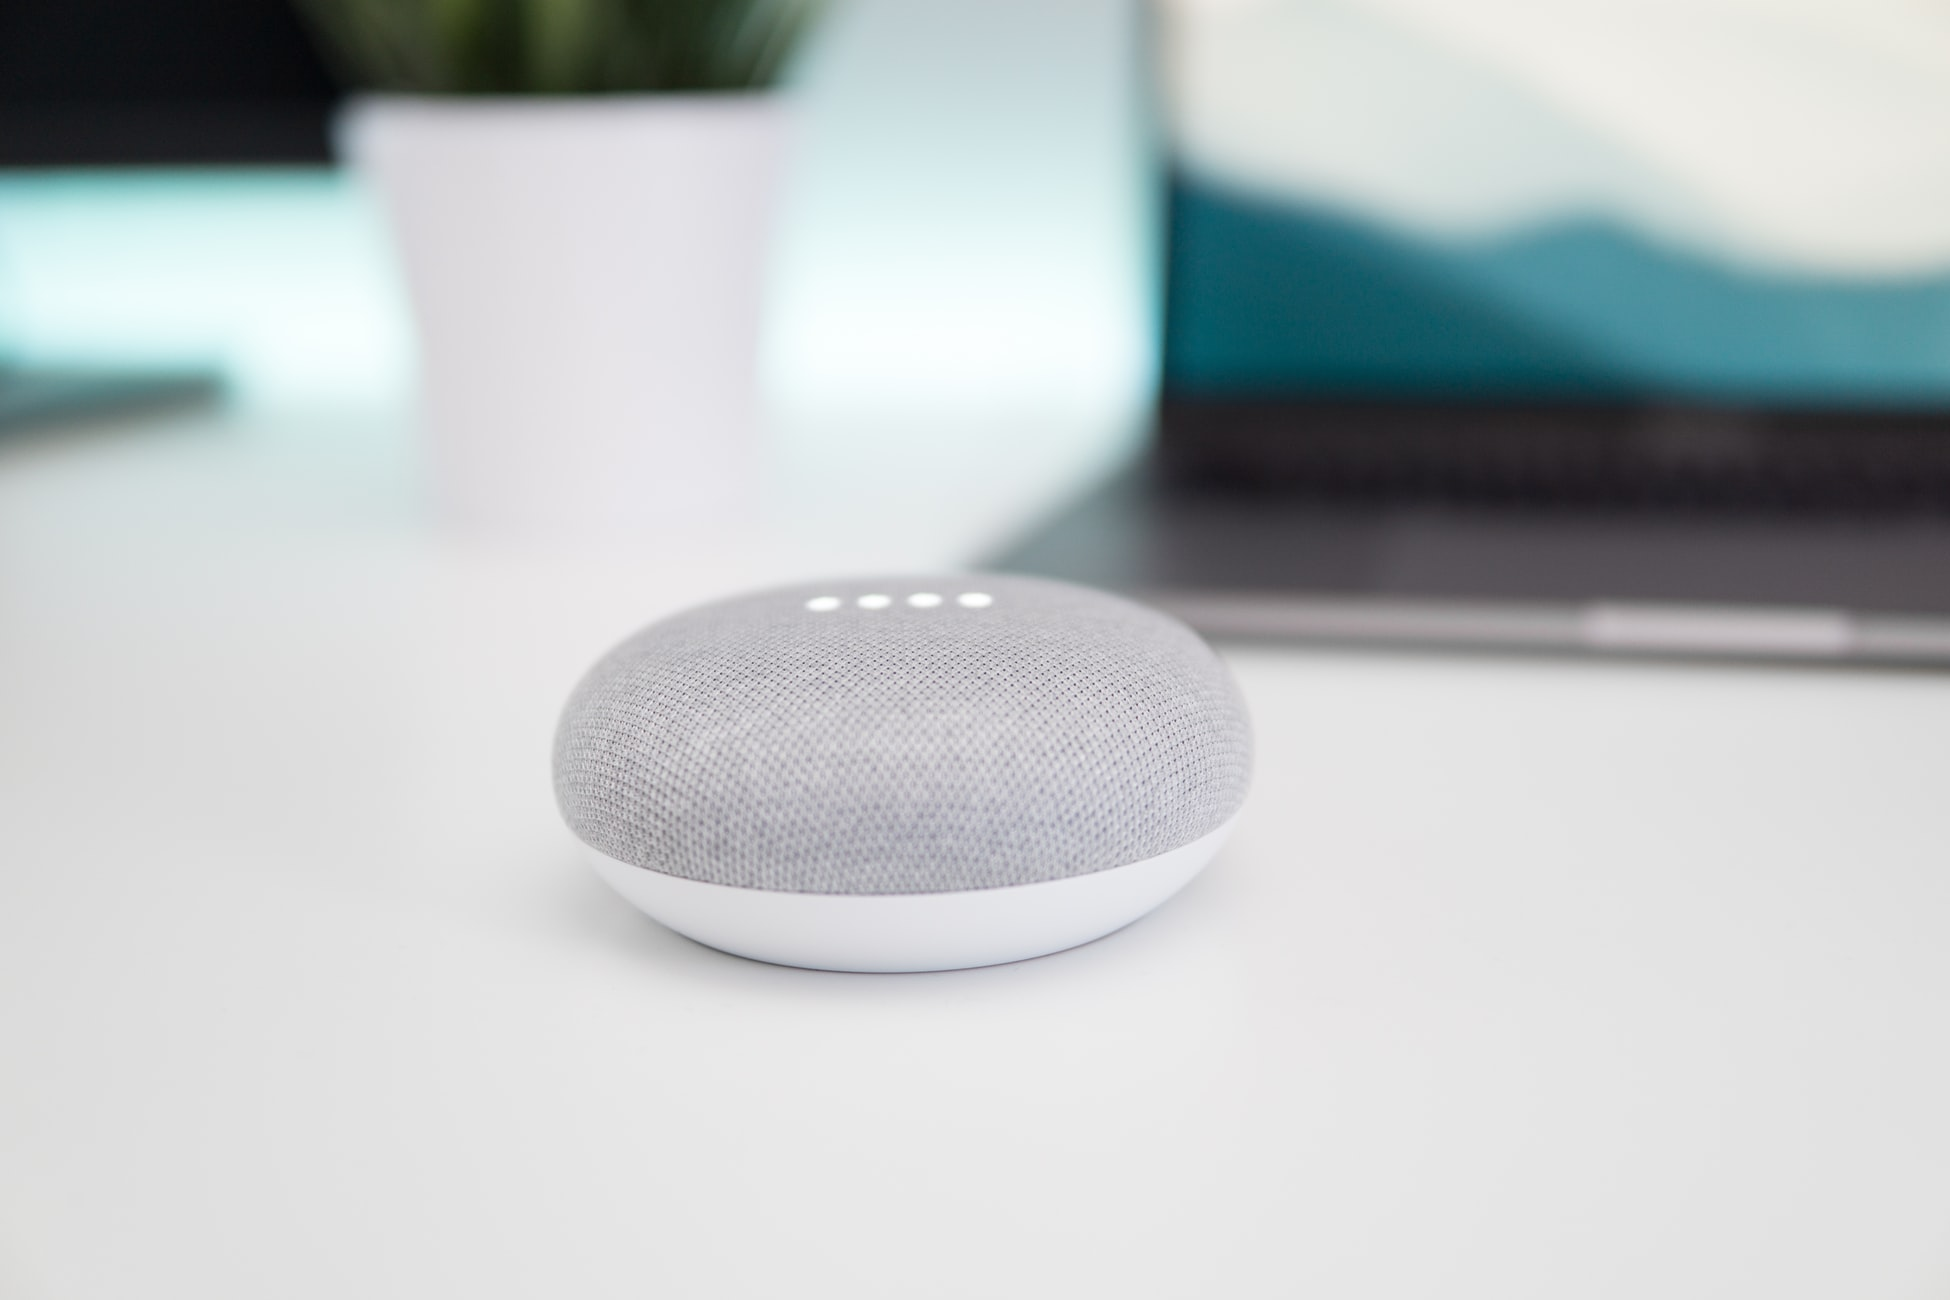 Smart assistant: come cambia la privacy nelle nostre case?